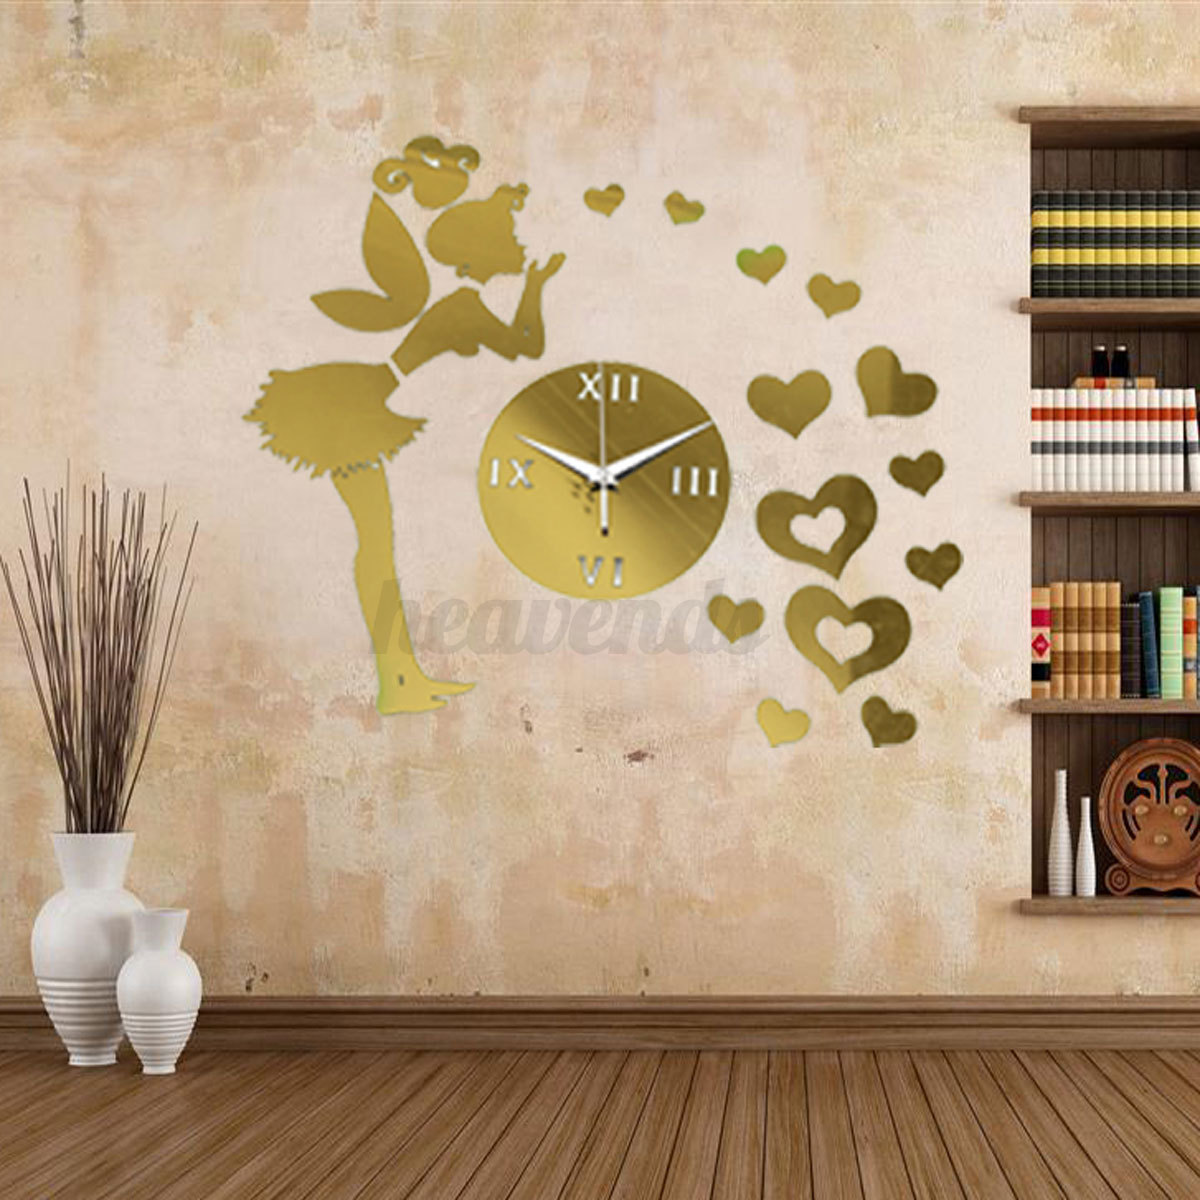 diy 3d horloge murale moderne design miroir maison art decor pr salon chambre ebay. Black Bedroom Furniture Sets. Home Design Ideas